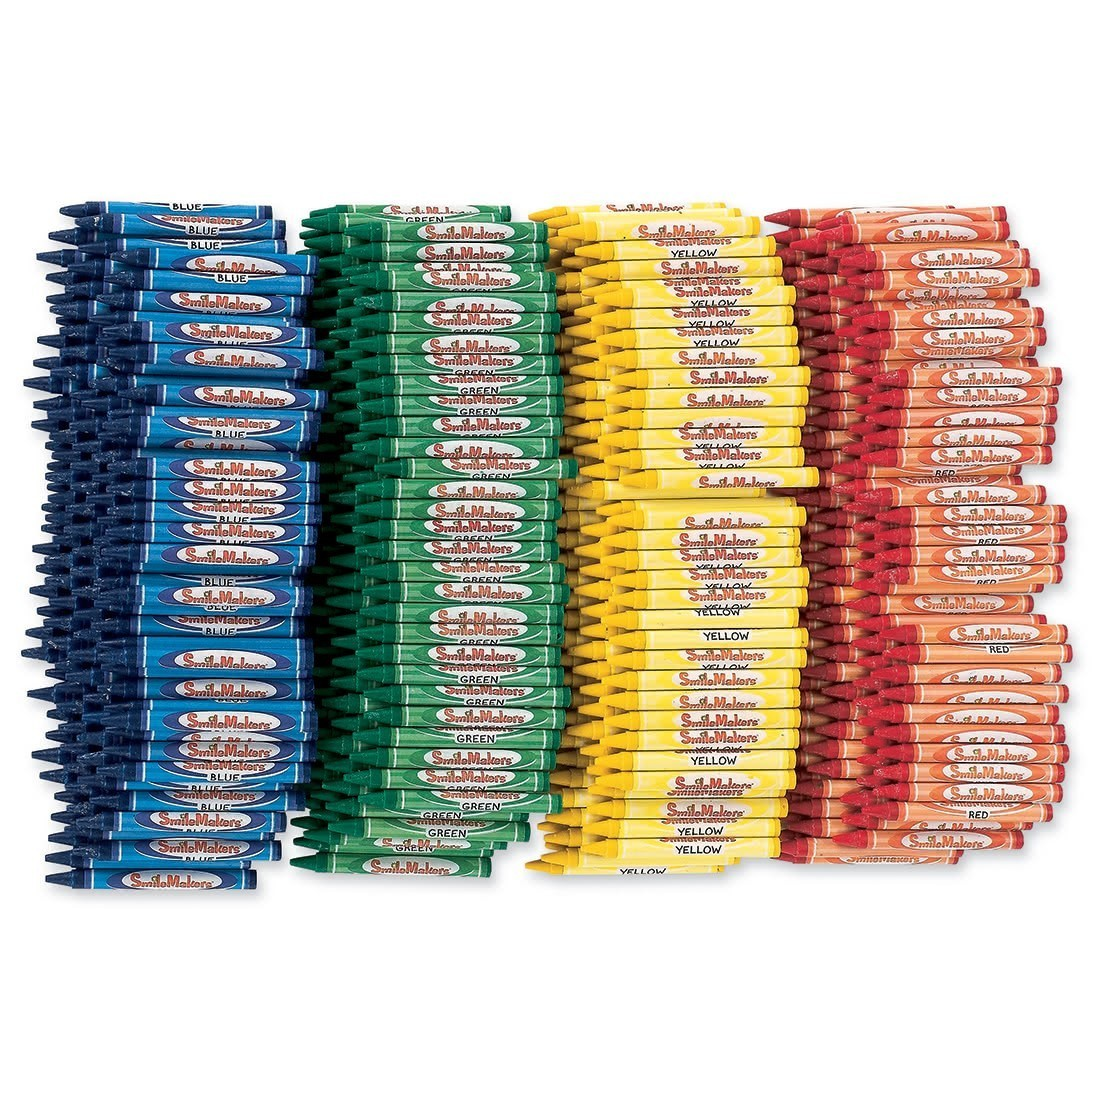 Assorted Crayons [image]